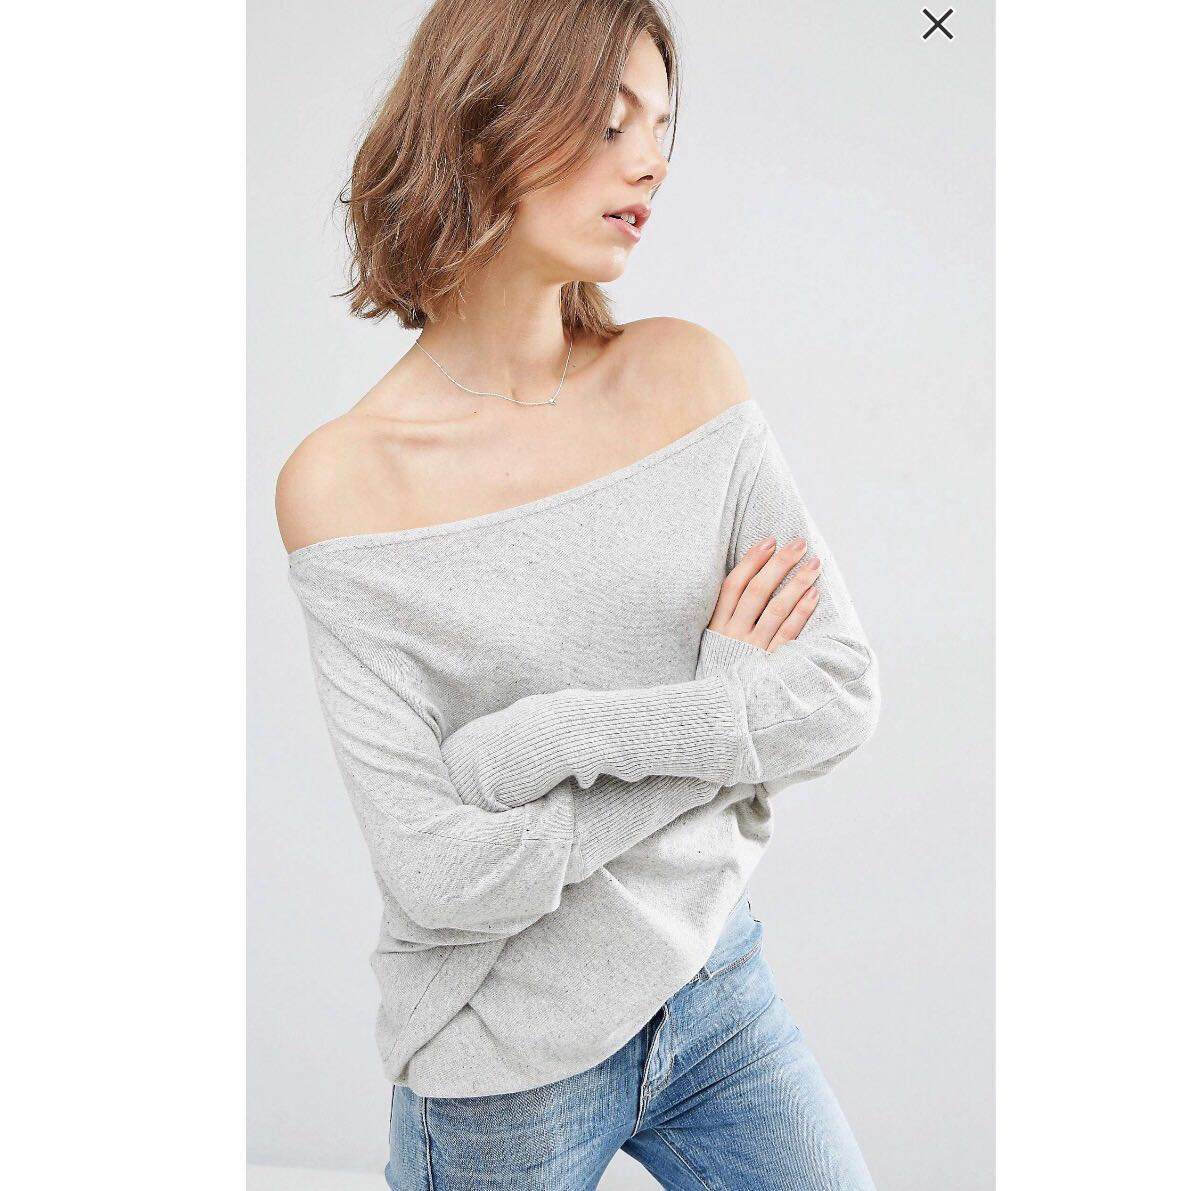 828973d37ba ASOS asymmetric shape off shoulder jumper in grey, Women's Fashion,  Clothes, Tops on Carousell